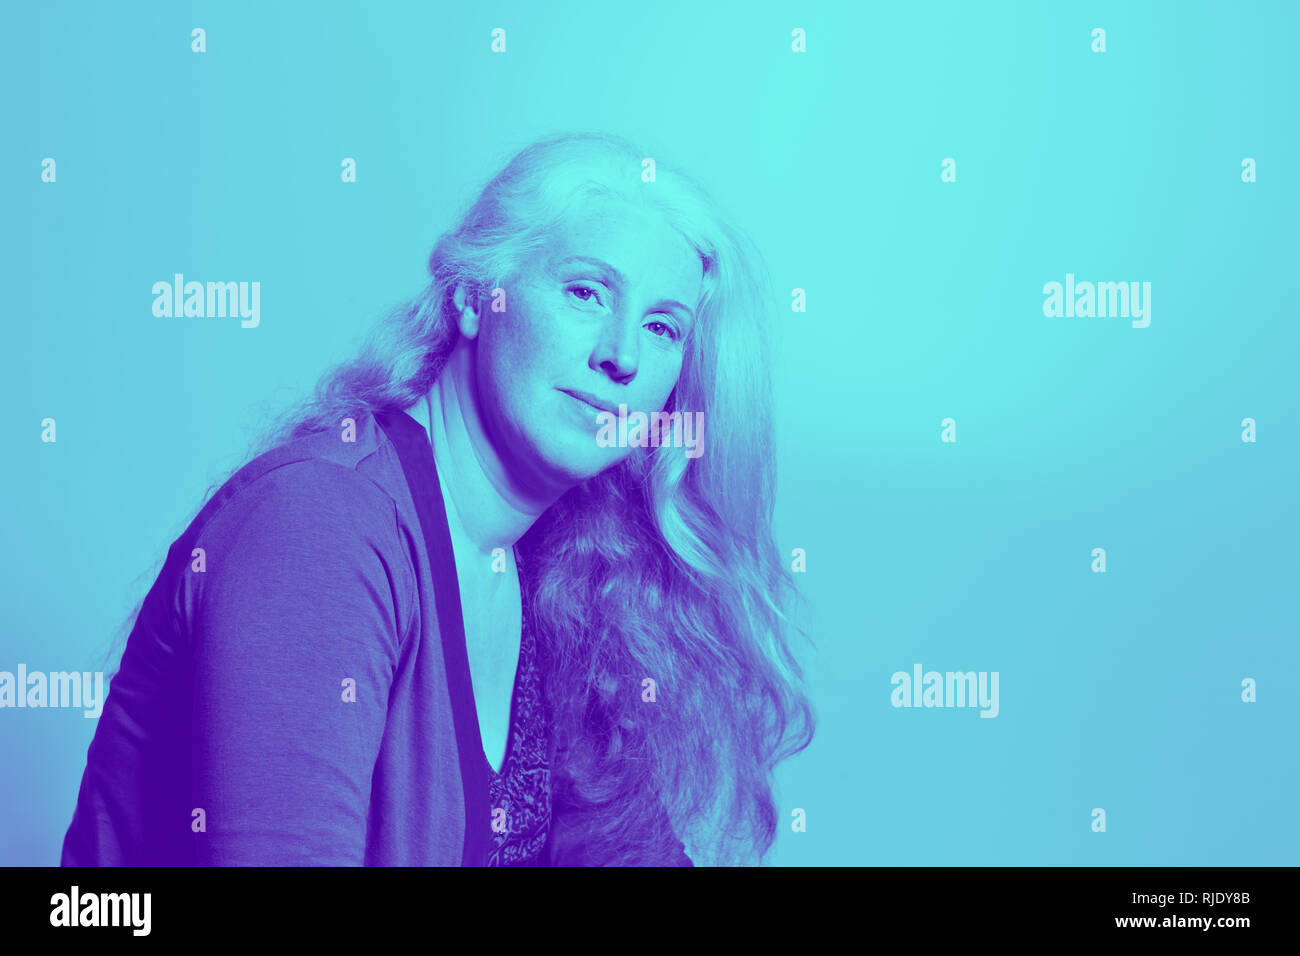 Portrait of a beautiful middle aged woman with long wavy hair in trendy duotone effect, copy space. Stock Photo